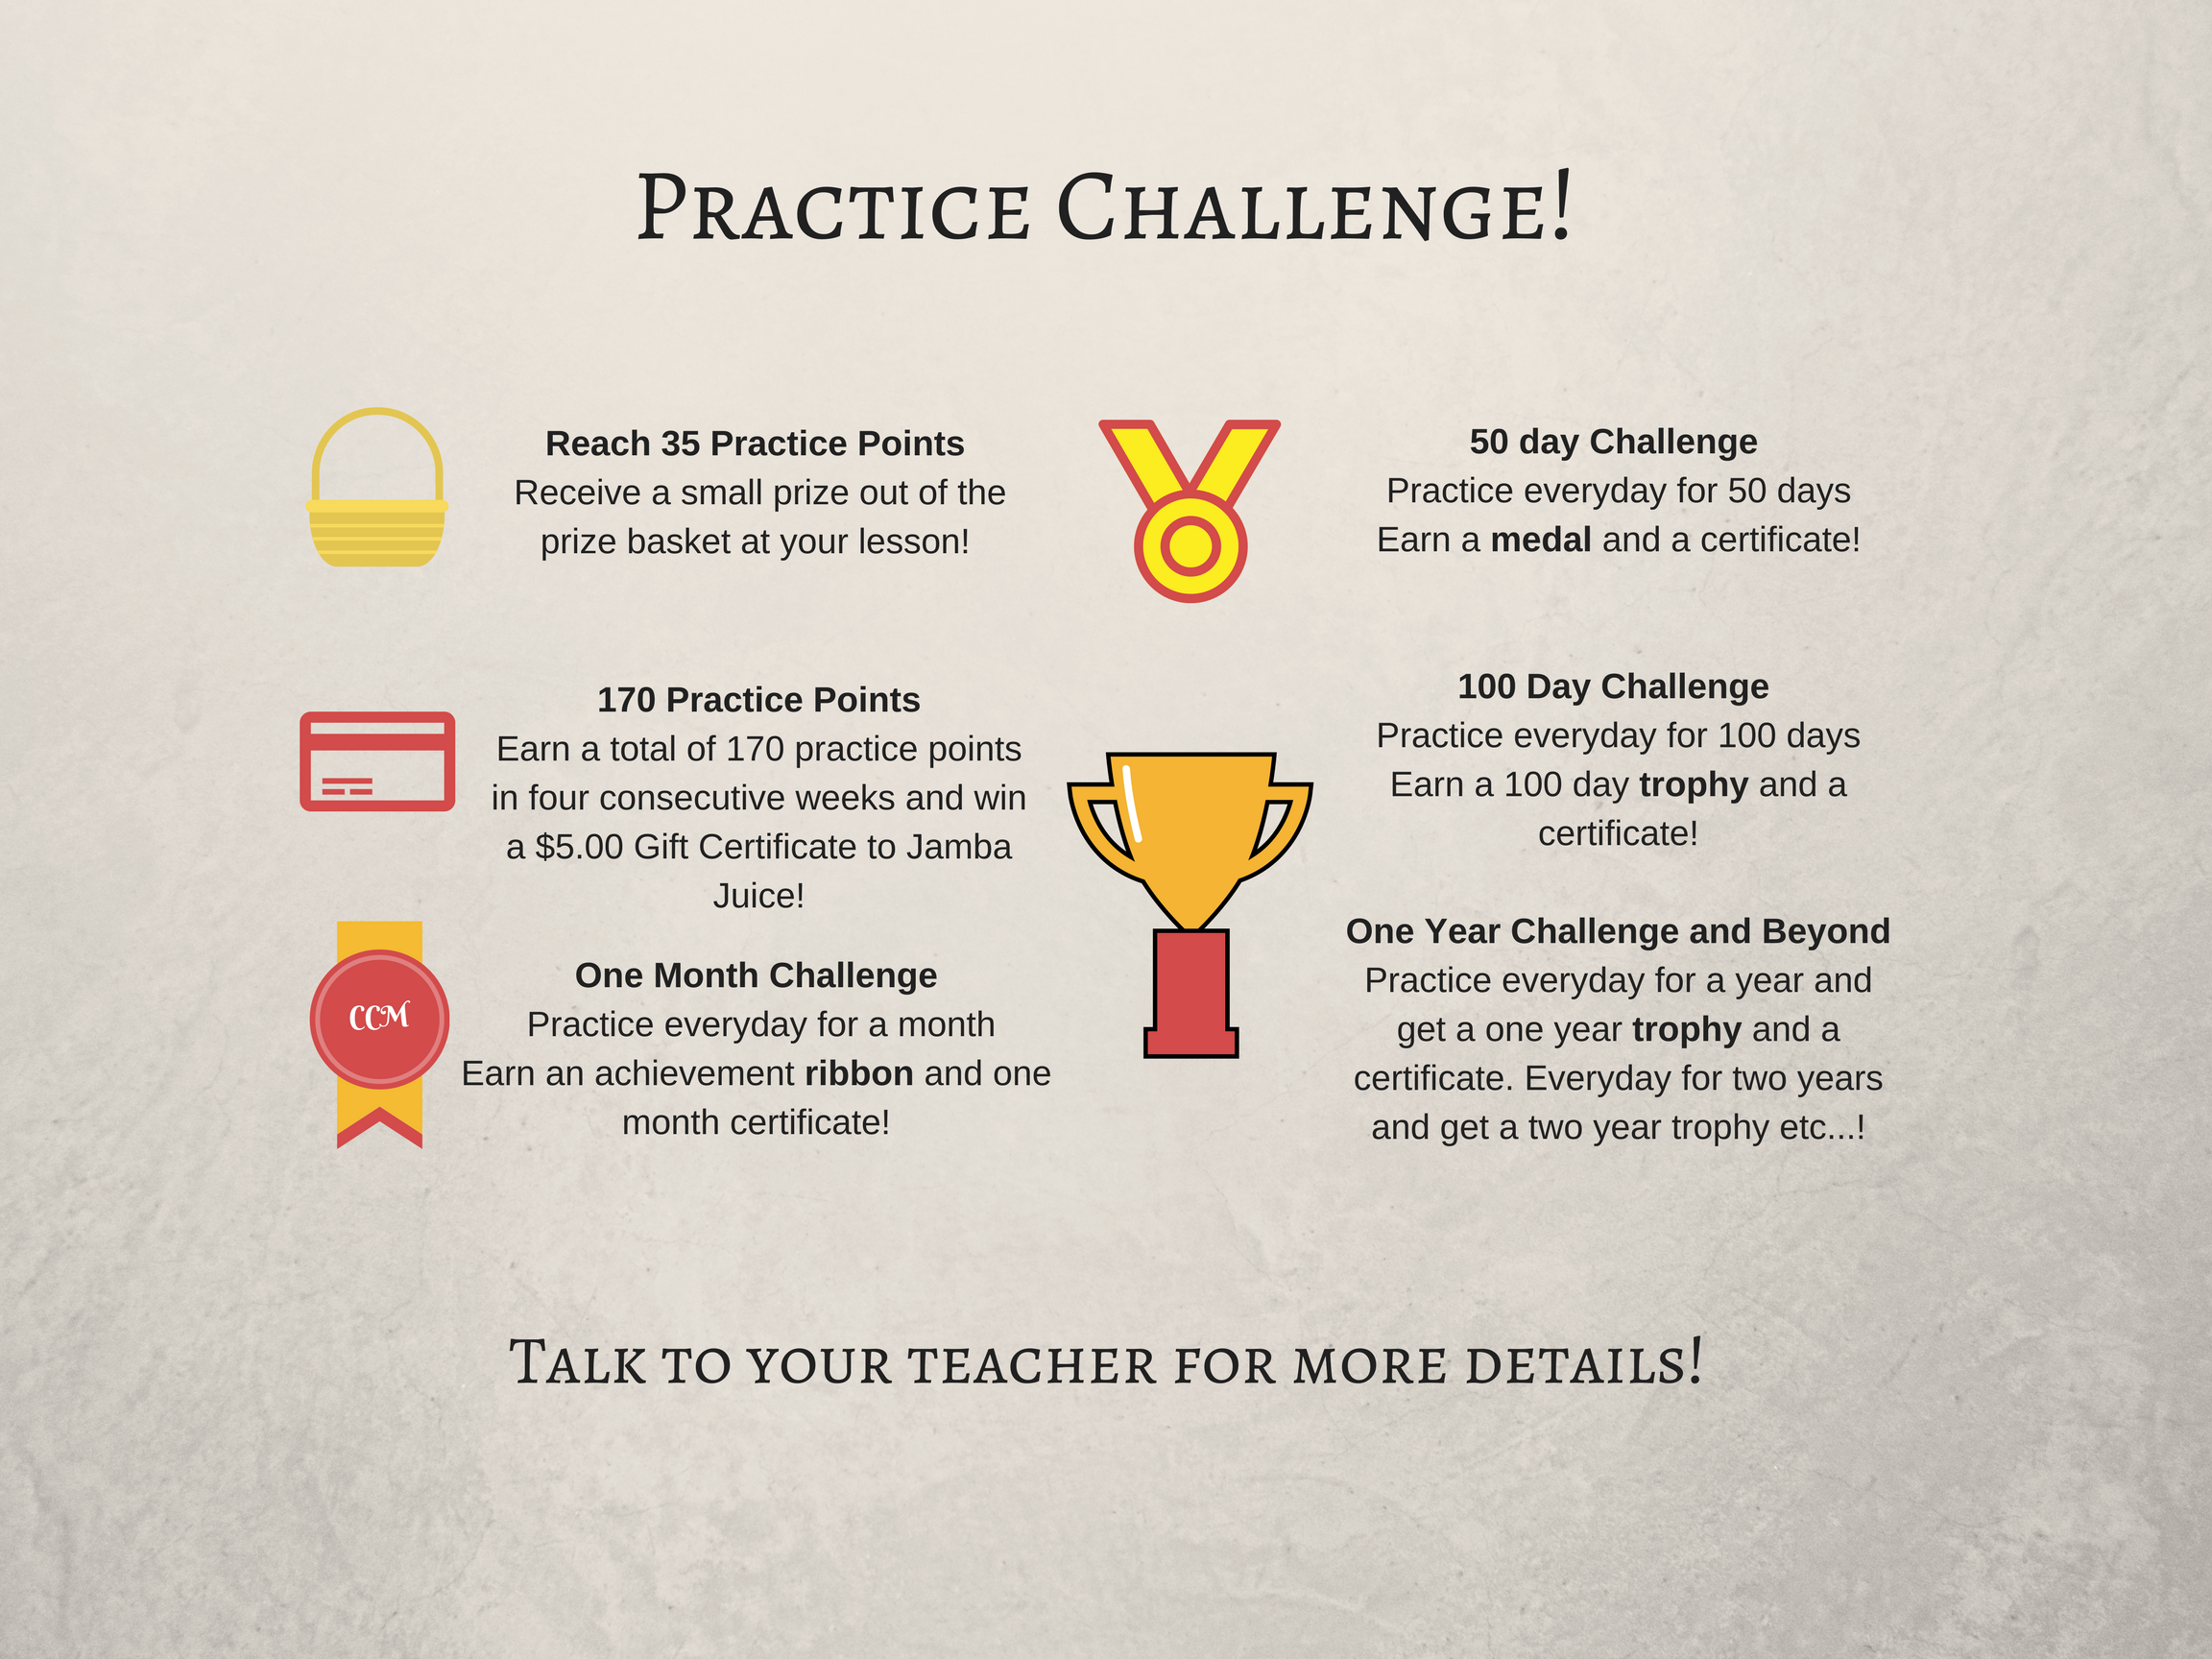 One Month Challenge - Practice everyday for a monthEarn an achievement ribbon and one month certificate!50 day Challenge - Practice everyday for 50 daysEarn a medal and a certificate100 Day Challenge - Practice every (4).png